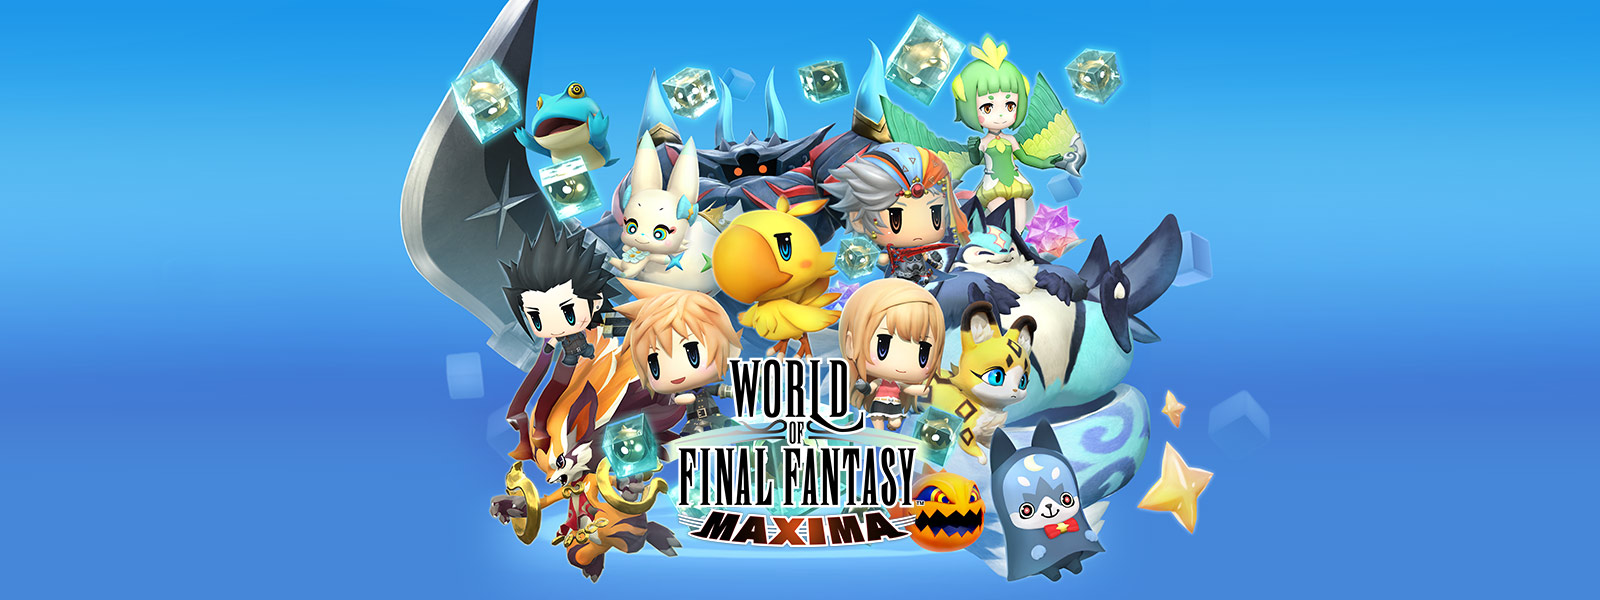 Personnages de WORLD OF FINAL FANTASY MAXIMA sautant du centre de l'écran